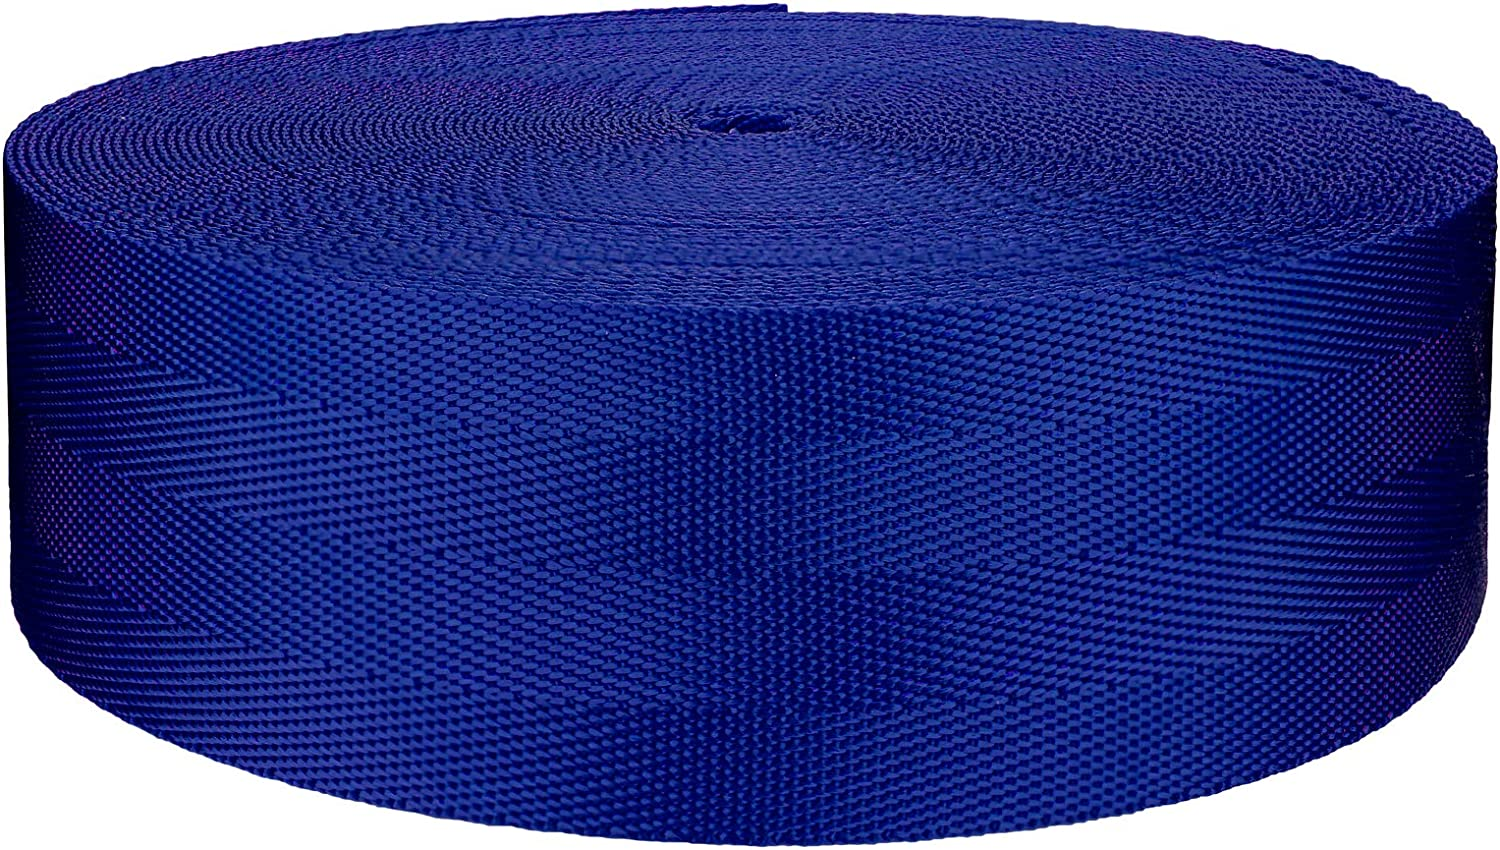 2 Inch 4 sold out Selling Panel Royal Blue Closeout Webbing Nylon Light Weight